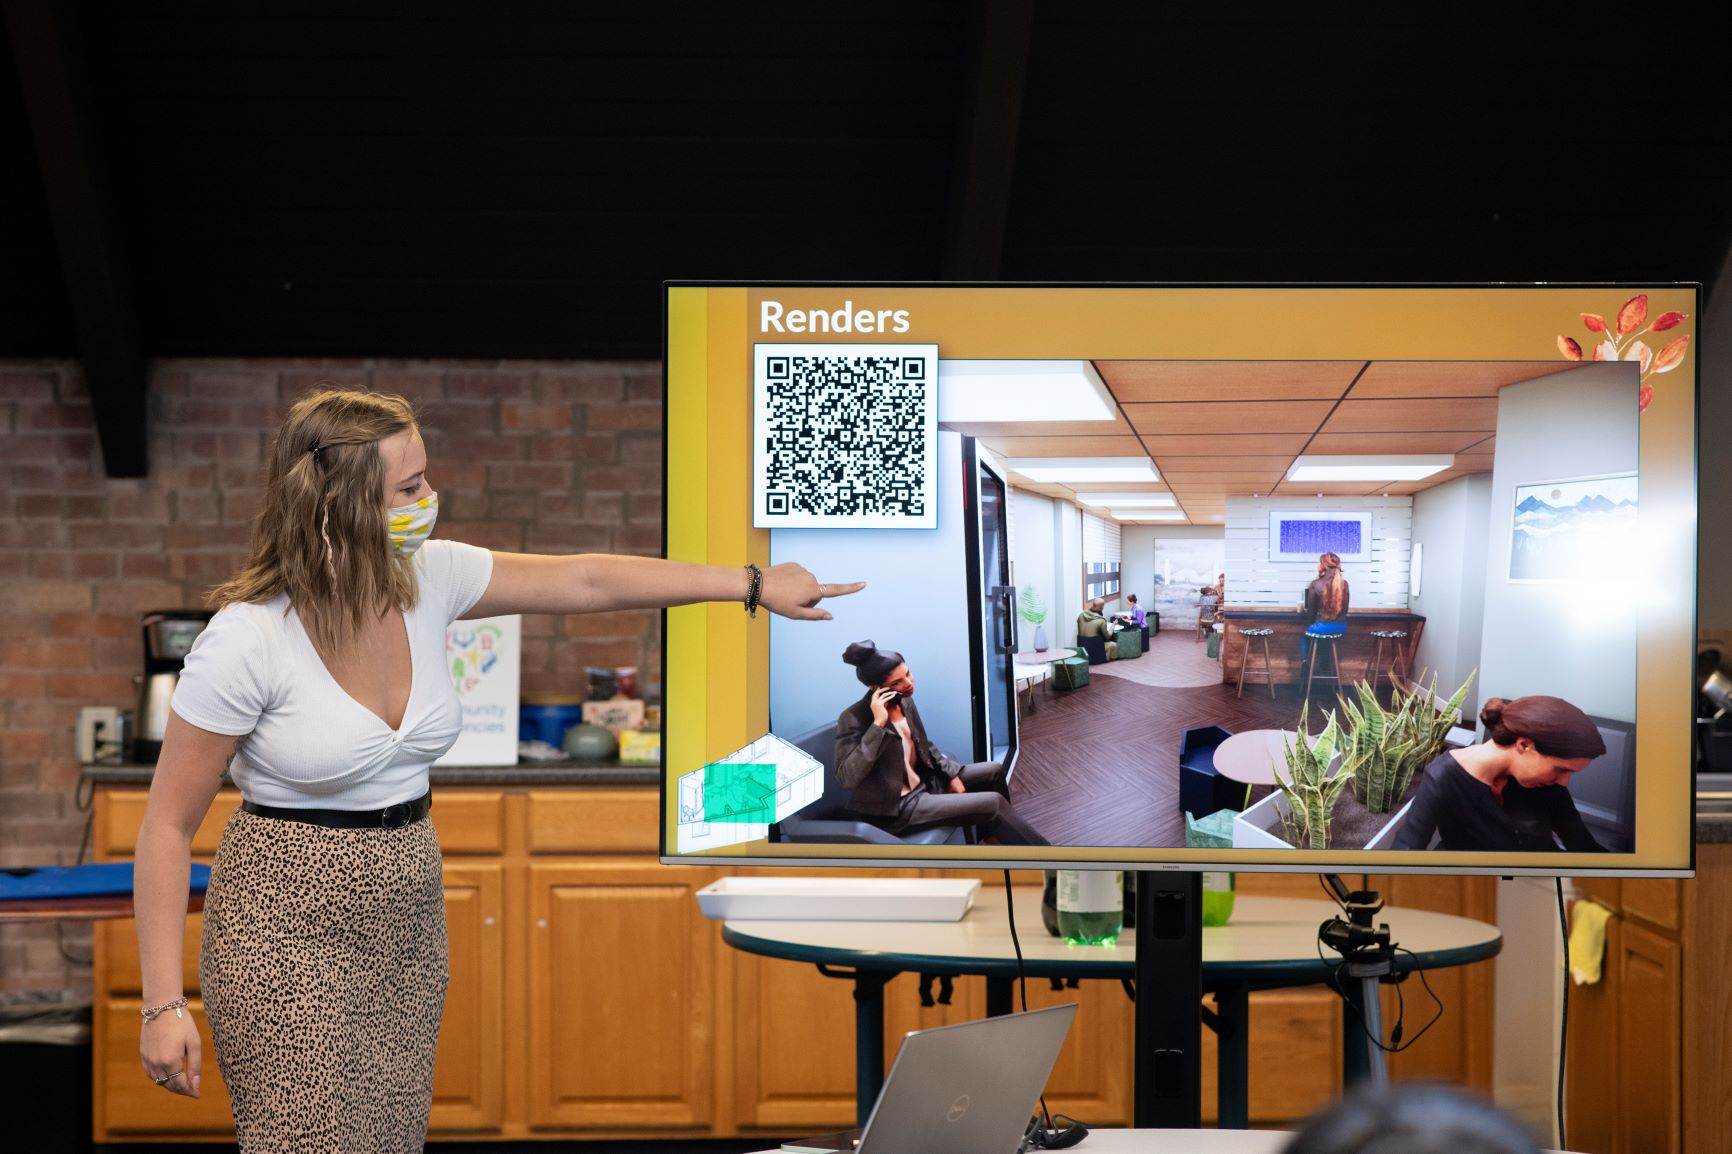 RIT students take on accessibility and medical care challenges by design